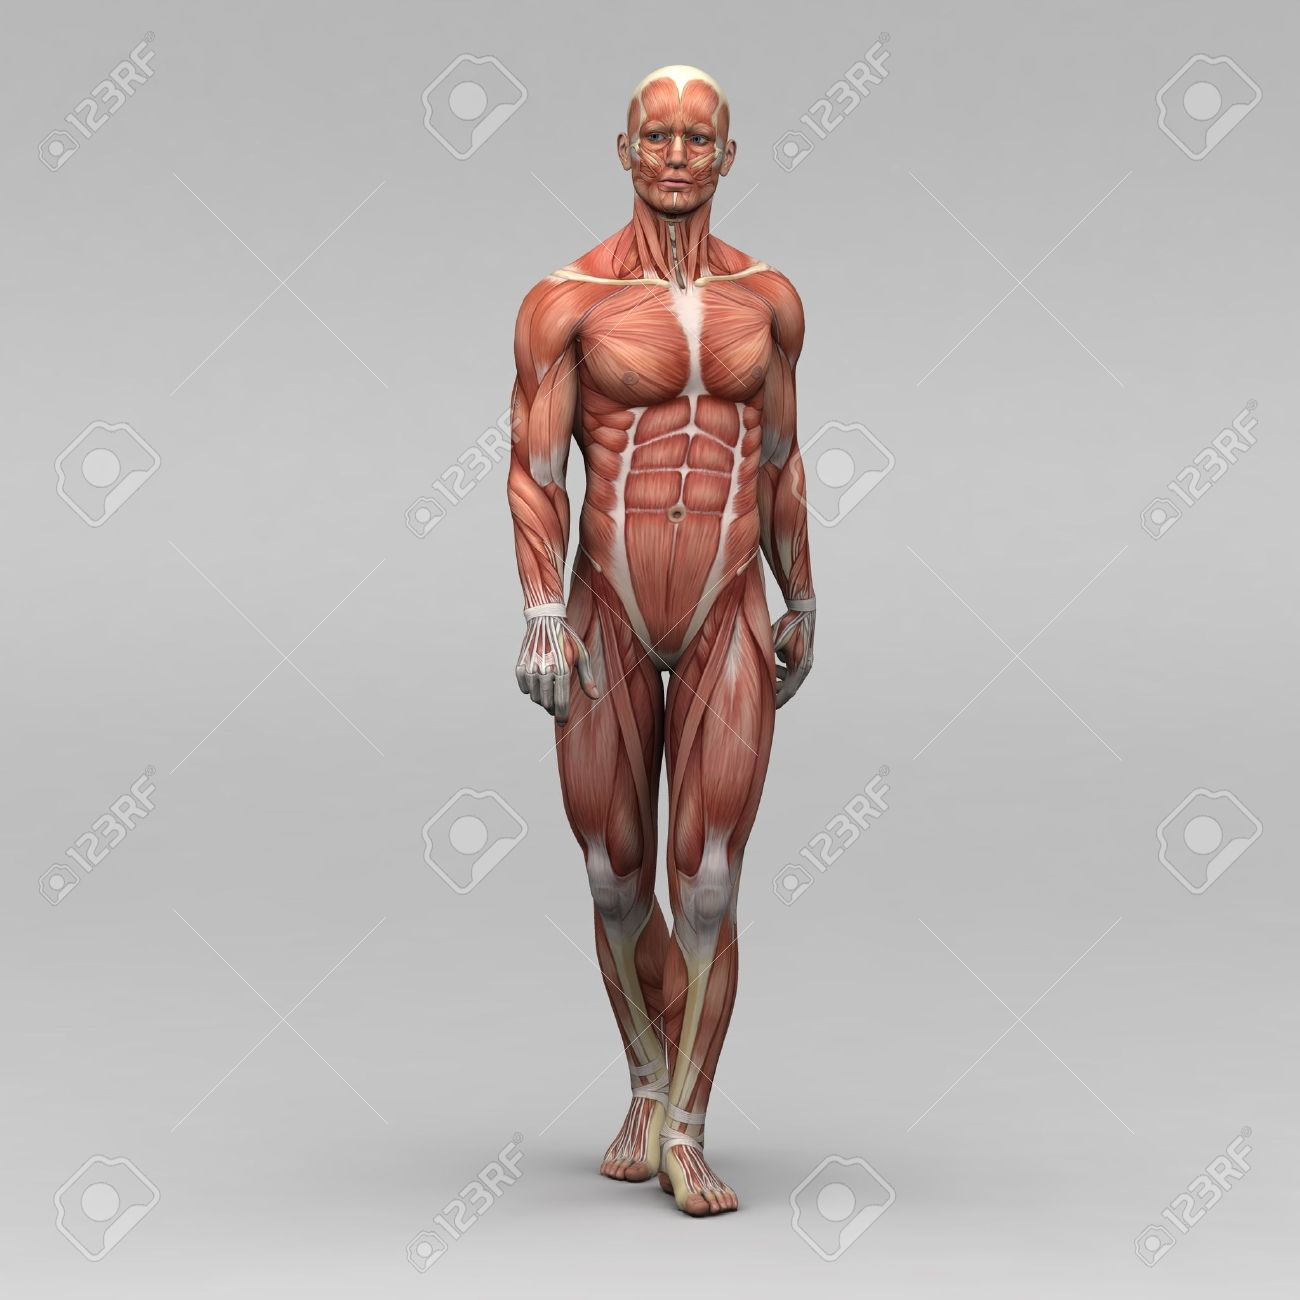 Athletic Male Human Anatomy And Muscles Stock Photo, Picture And ...